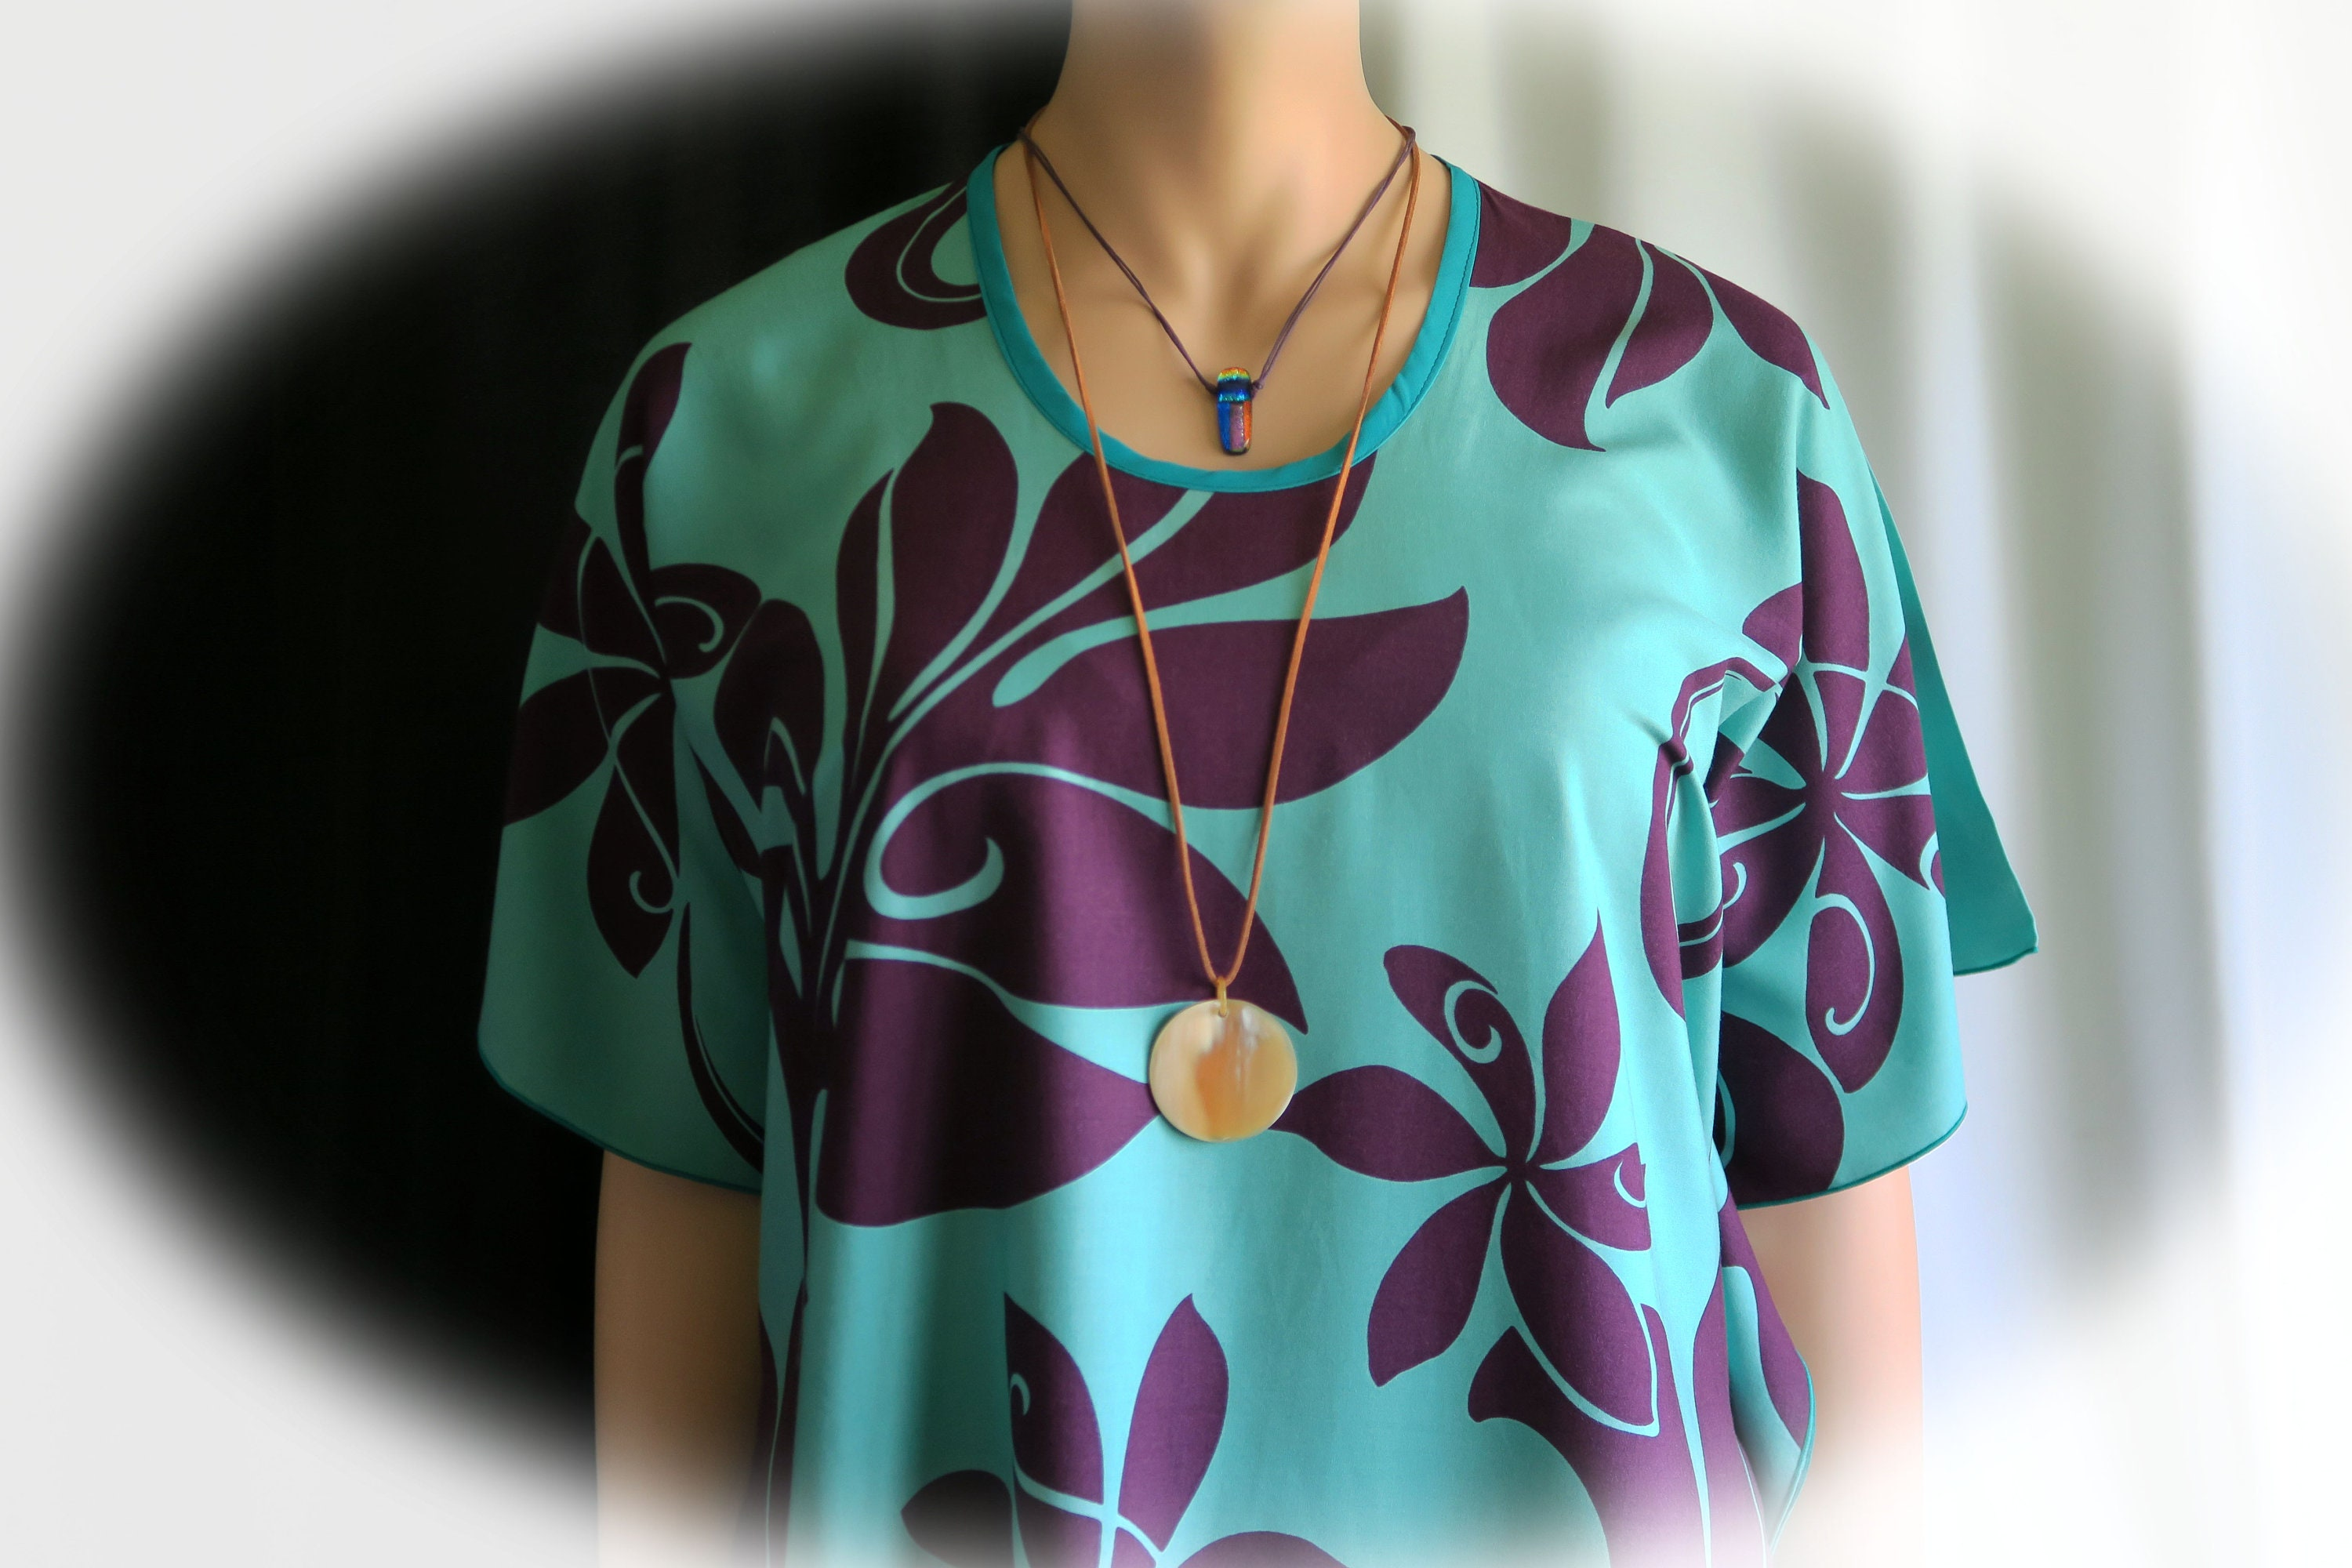 e43e5f7656a67 Violet Teal Forest Hawaiian Polynesian Clothing Woman's | Etsy